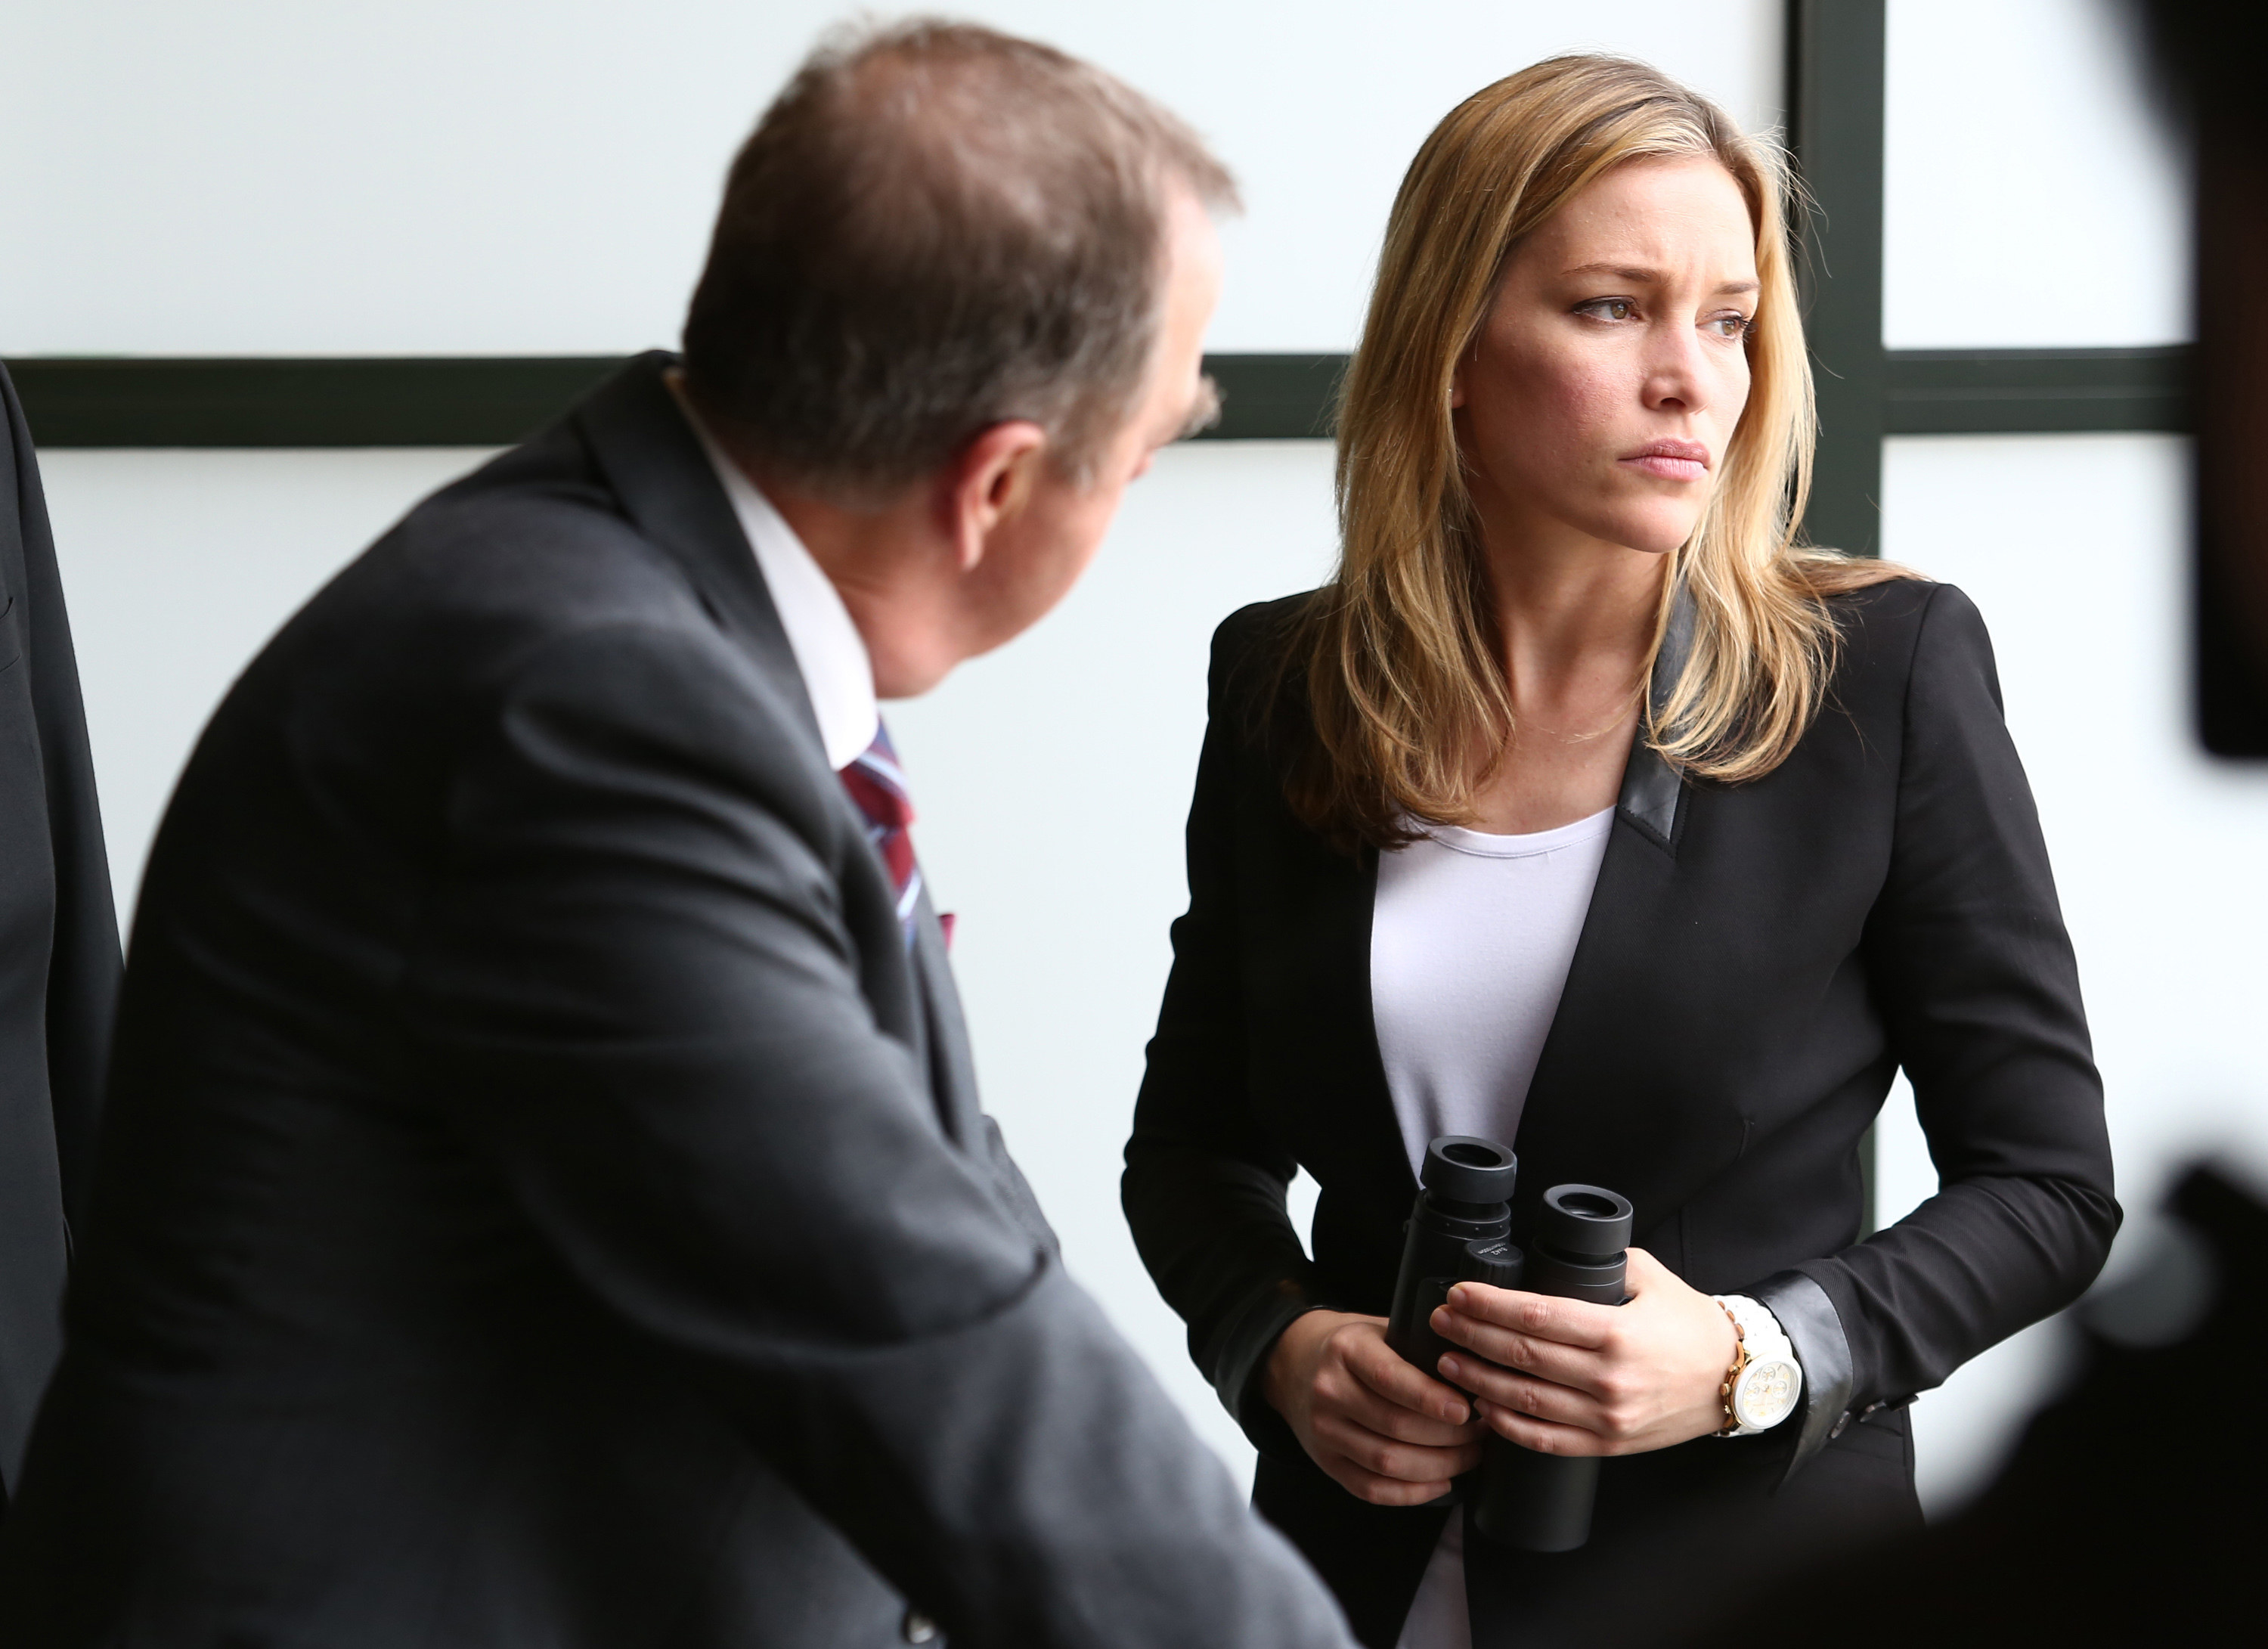 Gregory Itzin talks to Piper Perabo while she holds binoculars